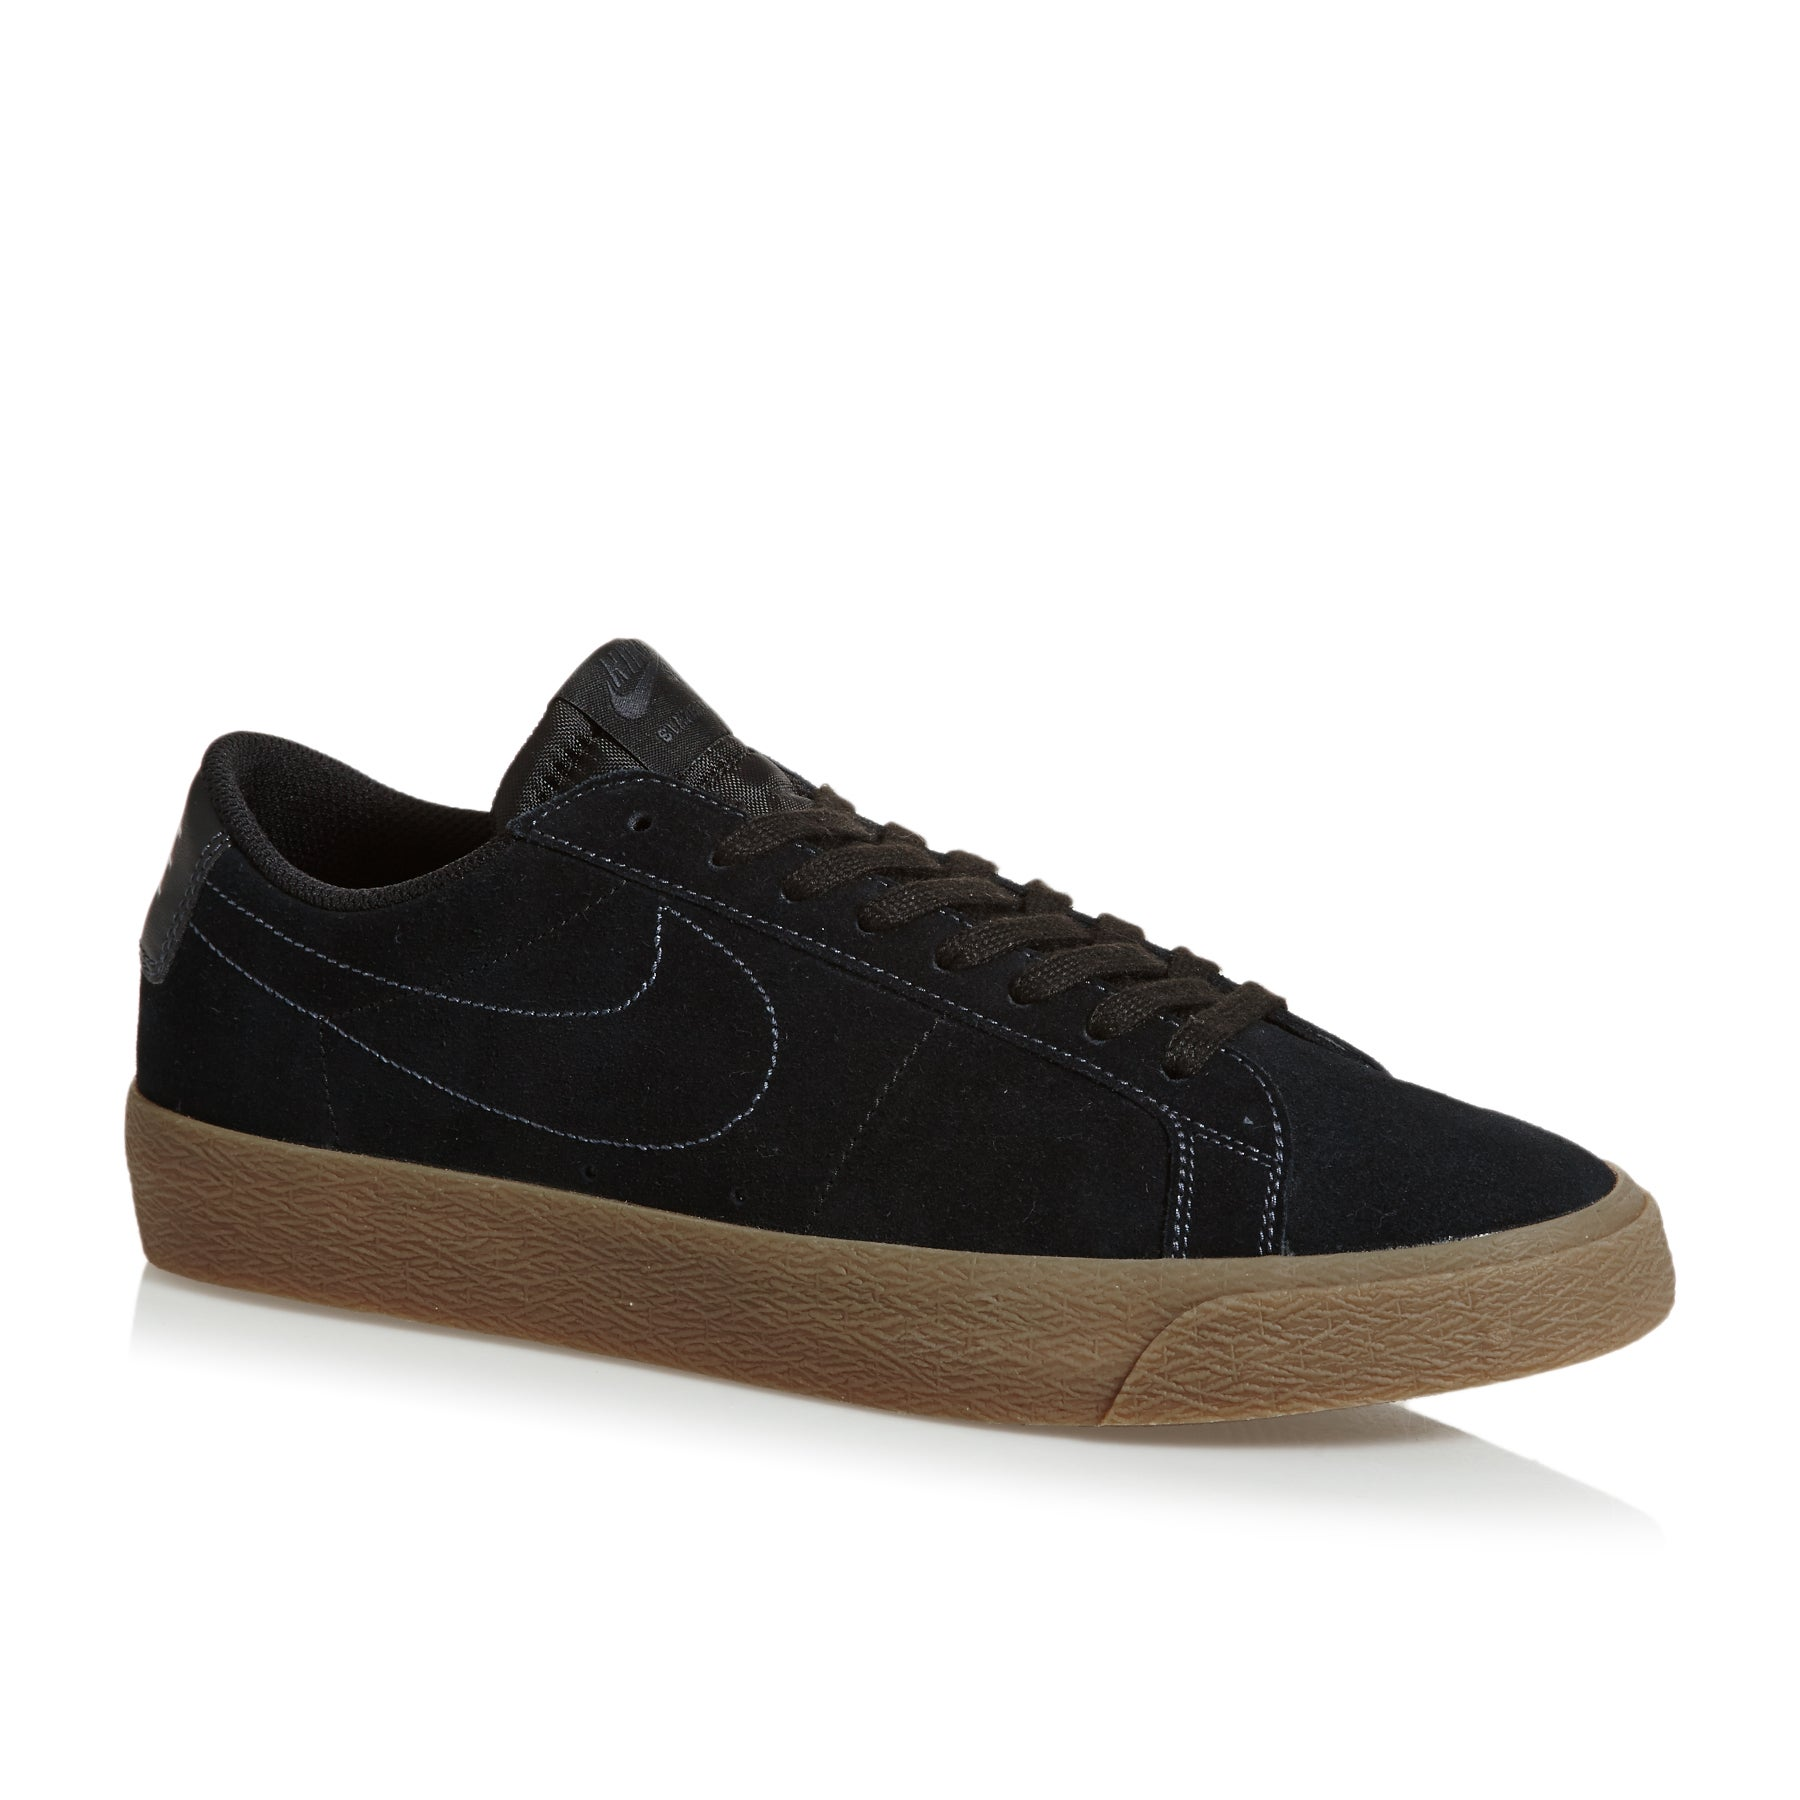 Chaussures Nike SB Blazer Zoom Low - Black Black Anthracite